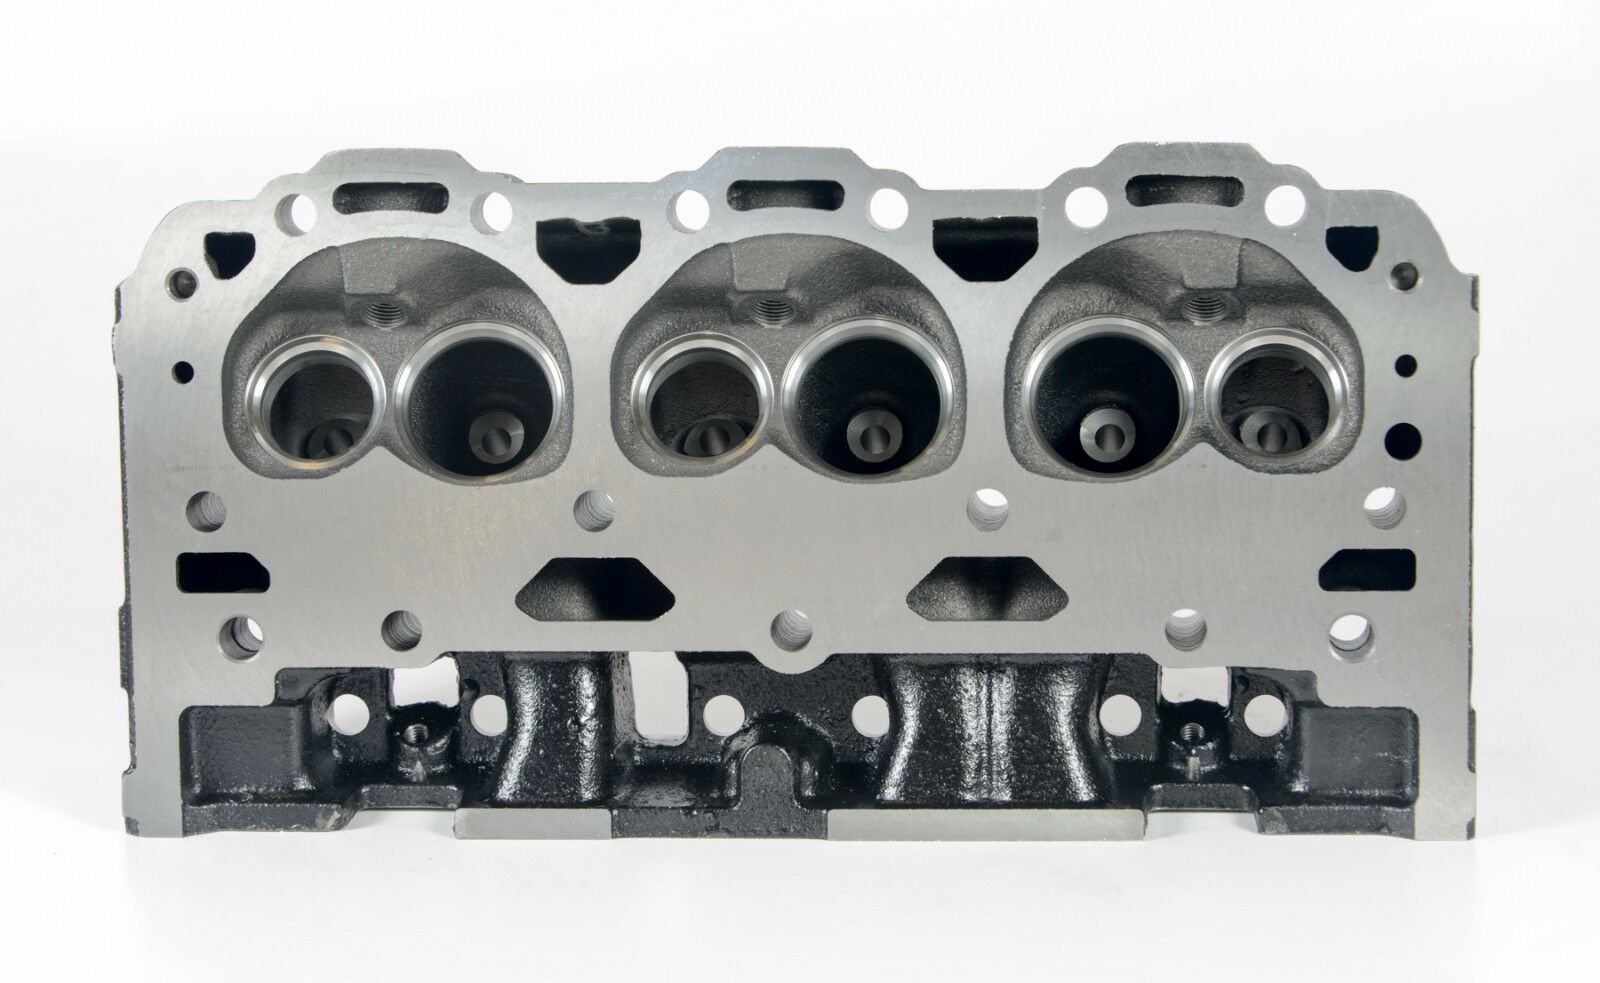 Gm Protection Plan >> NEW GM CHEVY GMC 4.3L 262 V6 Astro S10 VORTEC CYLINDER ...